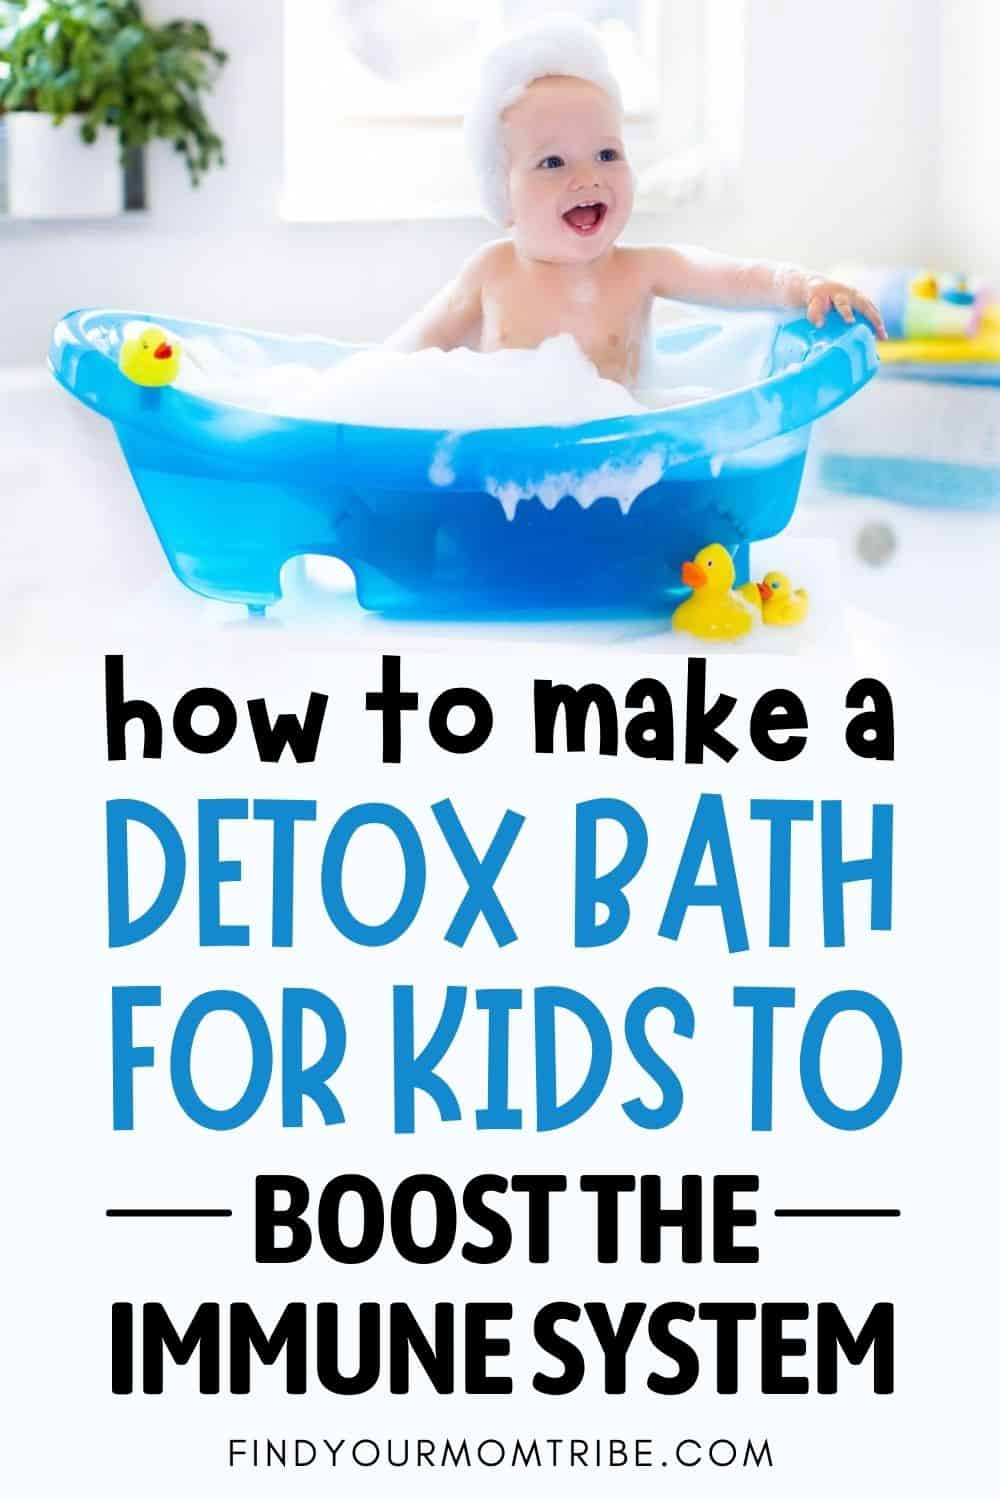 How To Make A Detox Bath For Kids To Boost The Immune System Pinterest